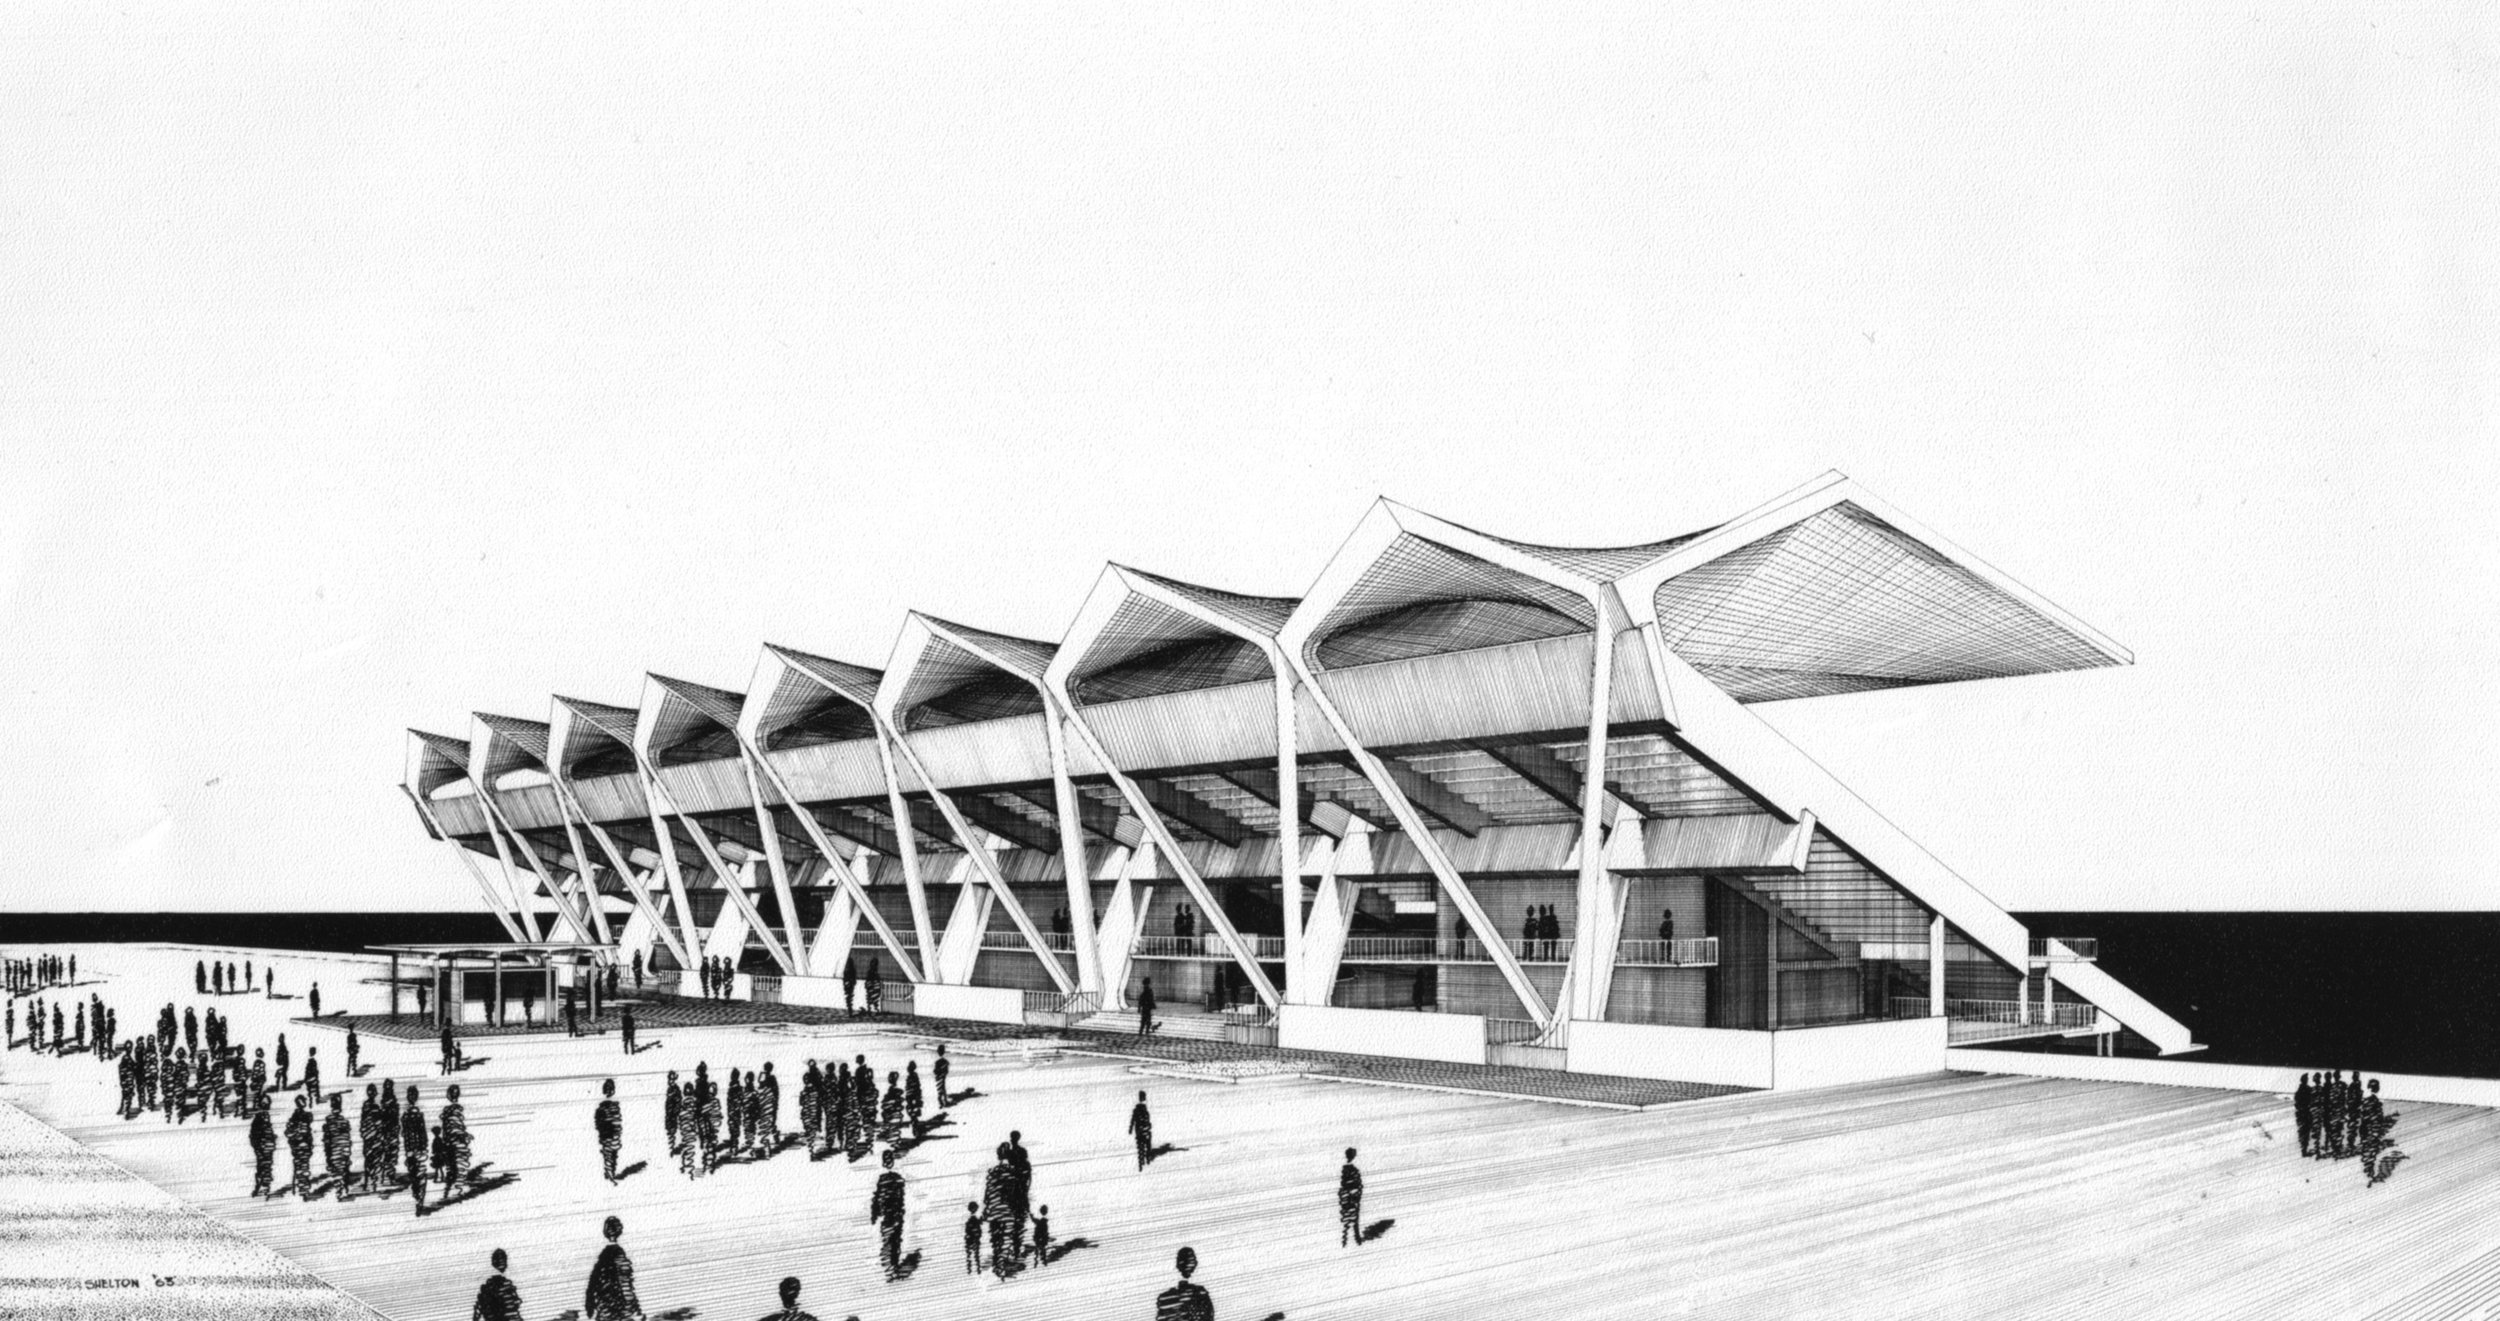 Sketch of Marine Stadium by Hilario Candela